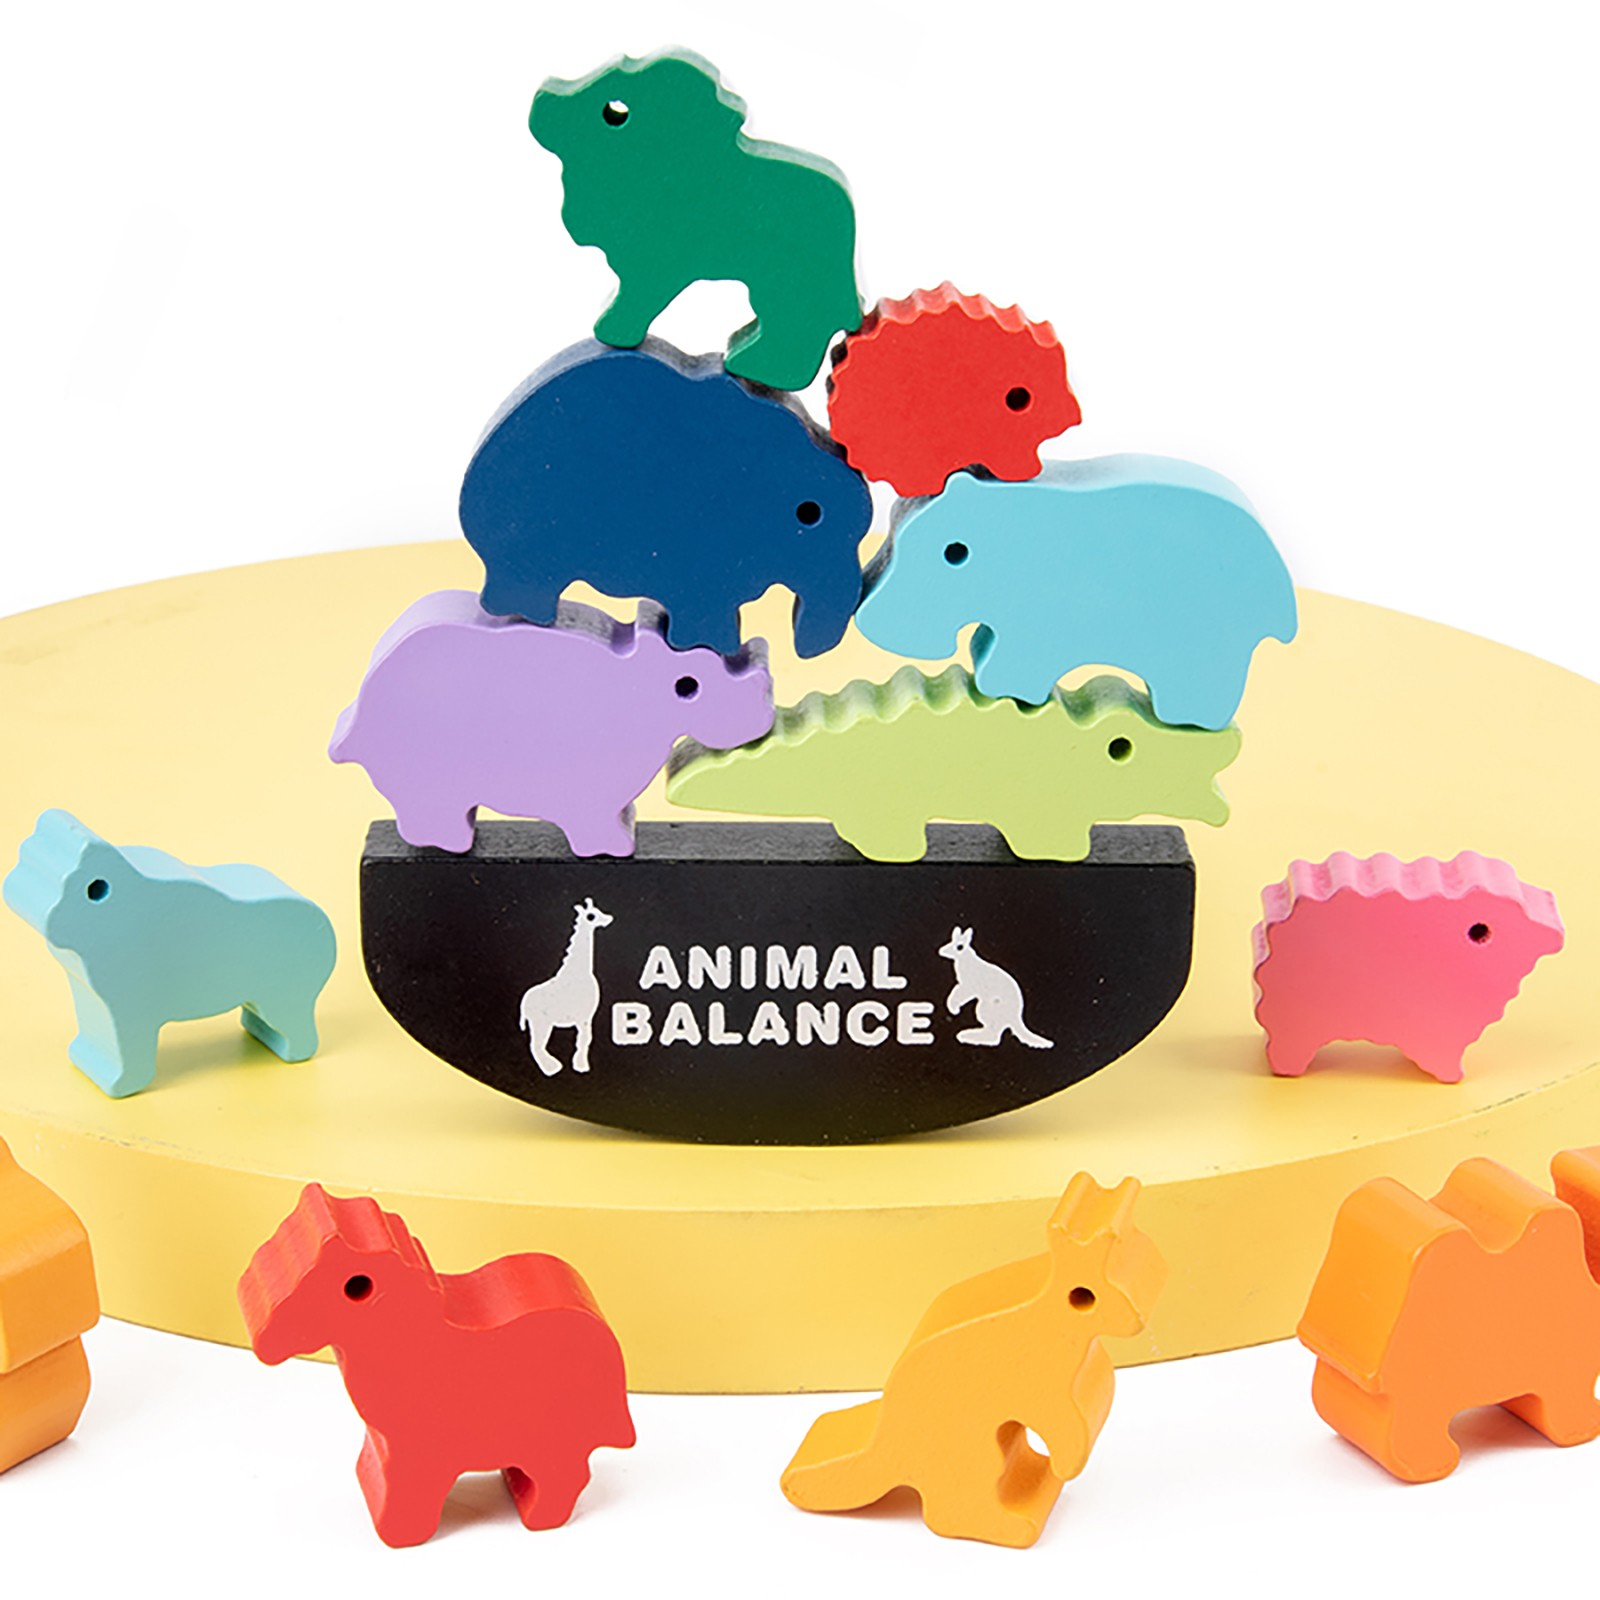 Wooden Animals Balance Training Puzzle Game Toy Kit Educational Preschool Toy Construction Toys Children Baby Puzzle Game Toy